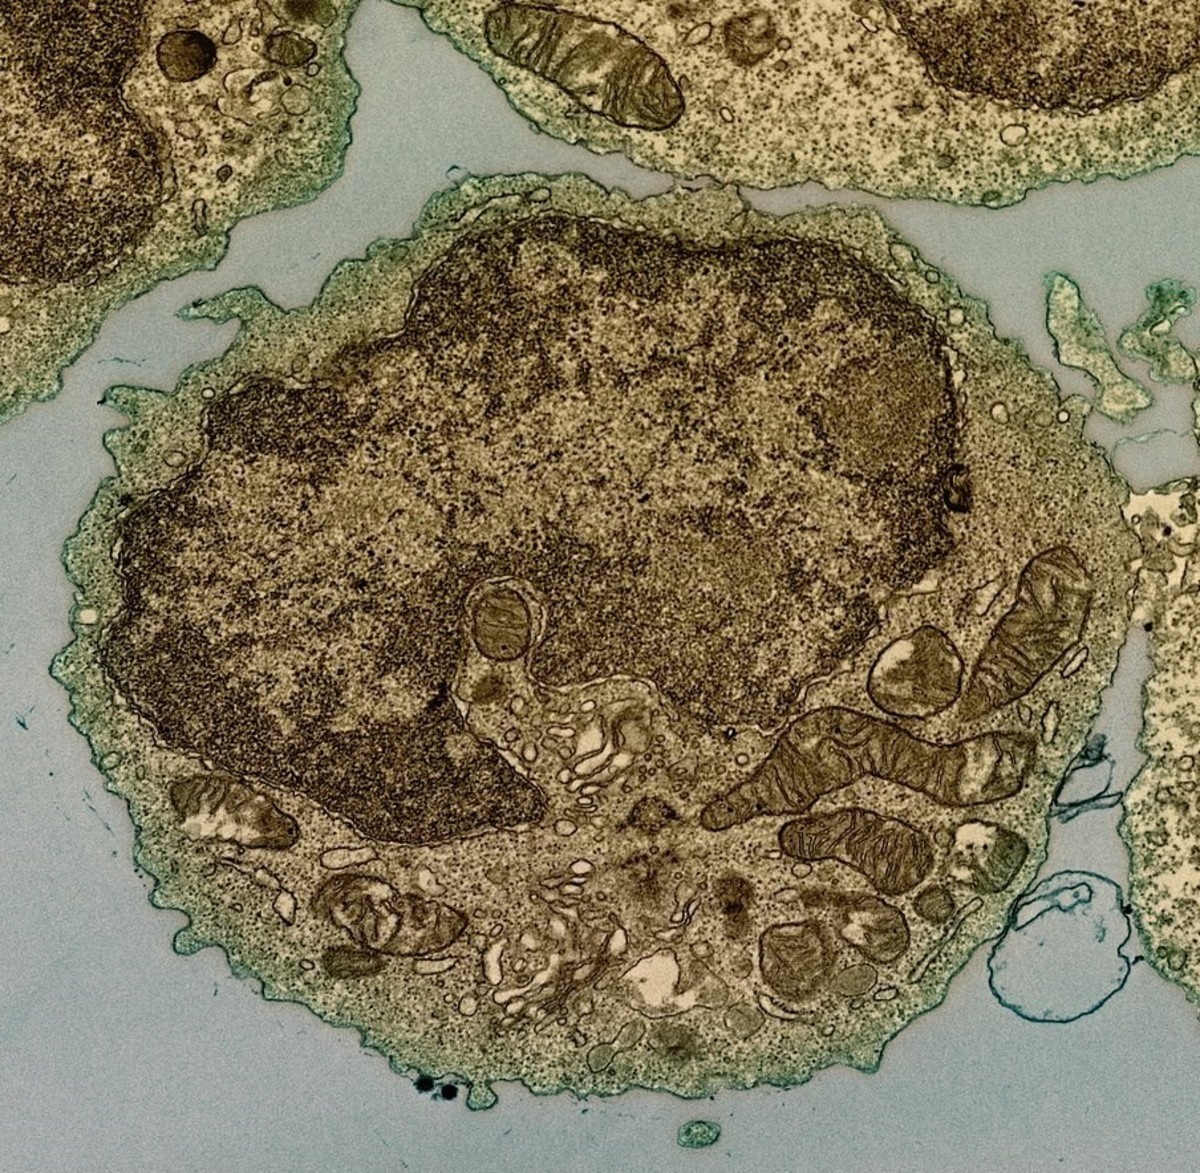 A transmission electron micrograph of the interior of a B lymphocyte from a human